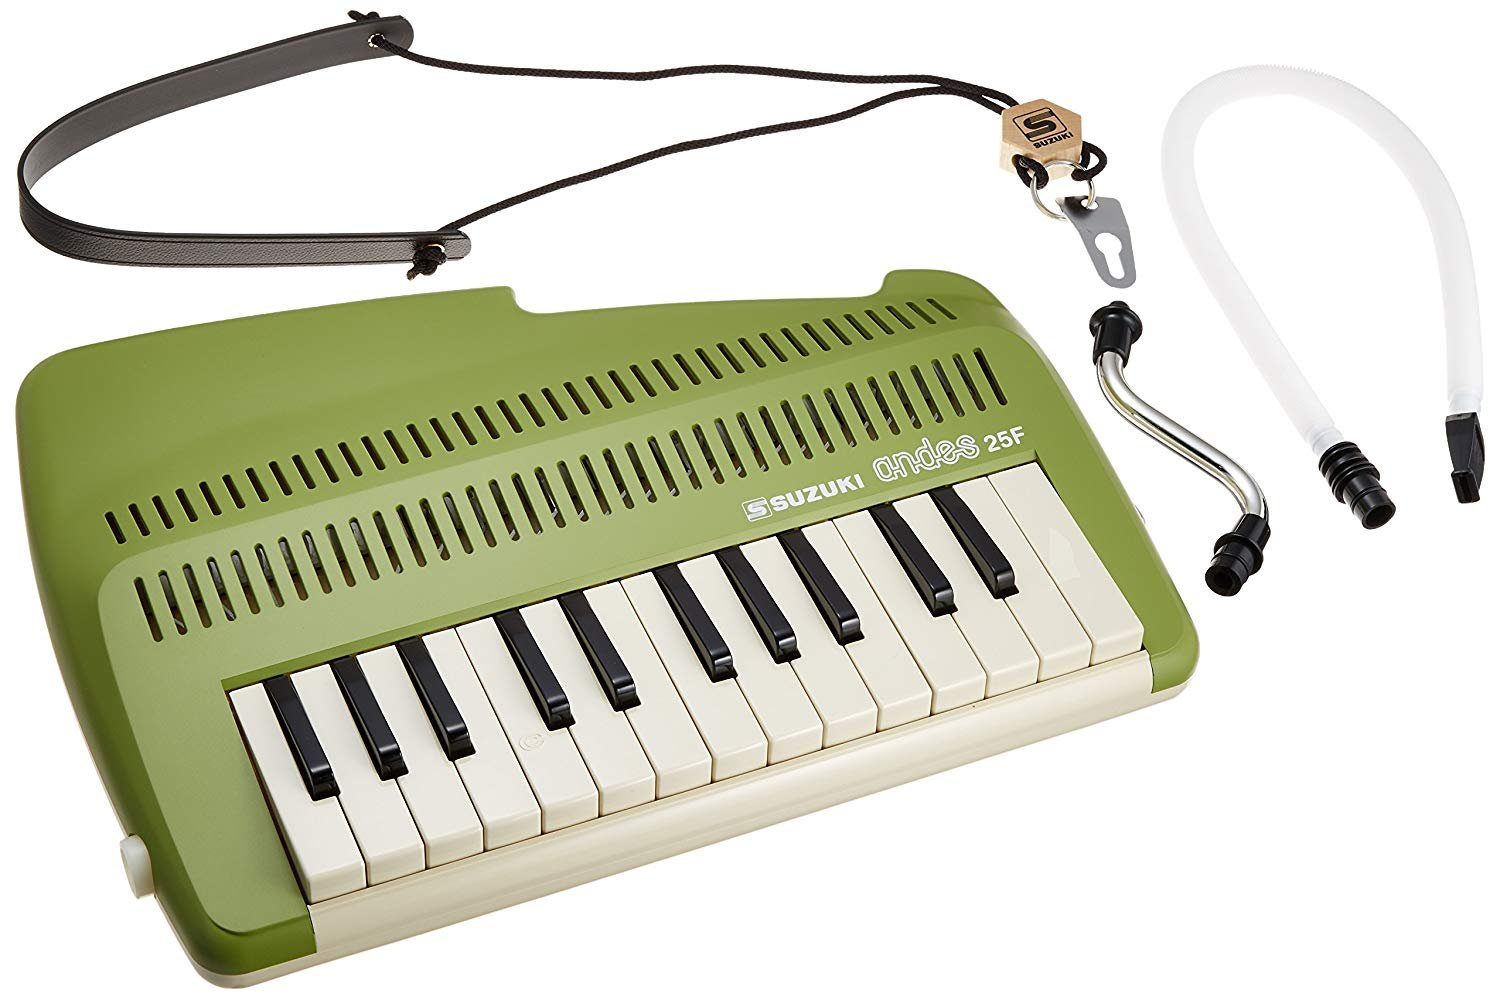 New Green Suzuki Andes A-25F Melodion 25 Key Melodica